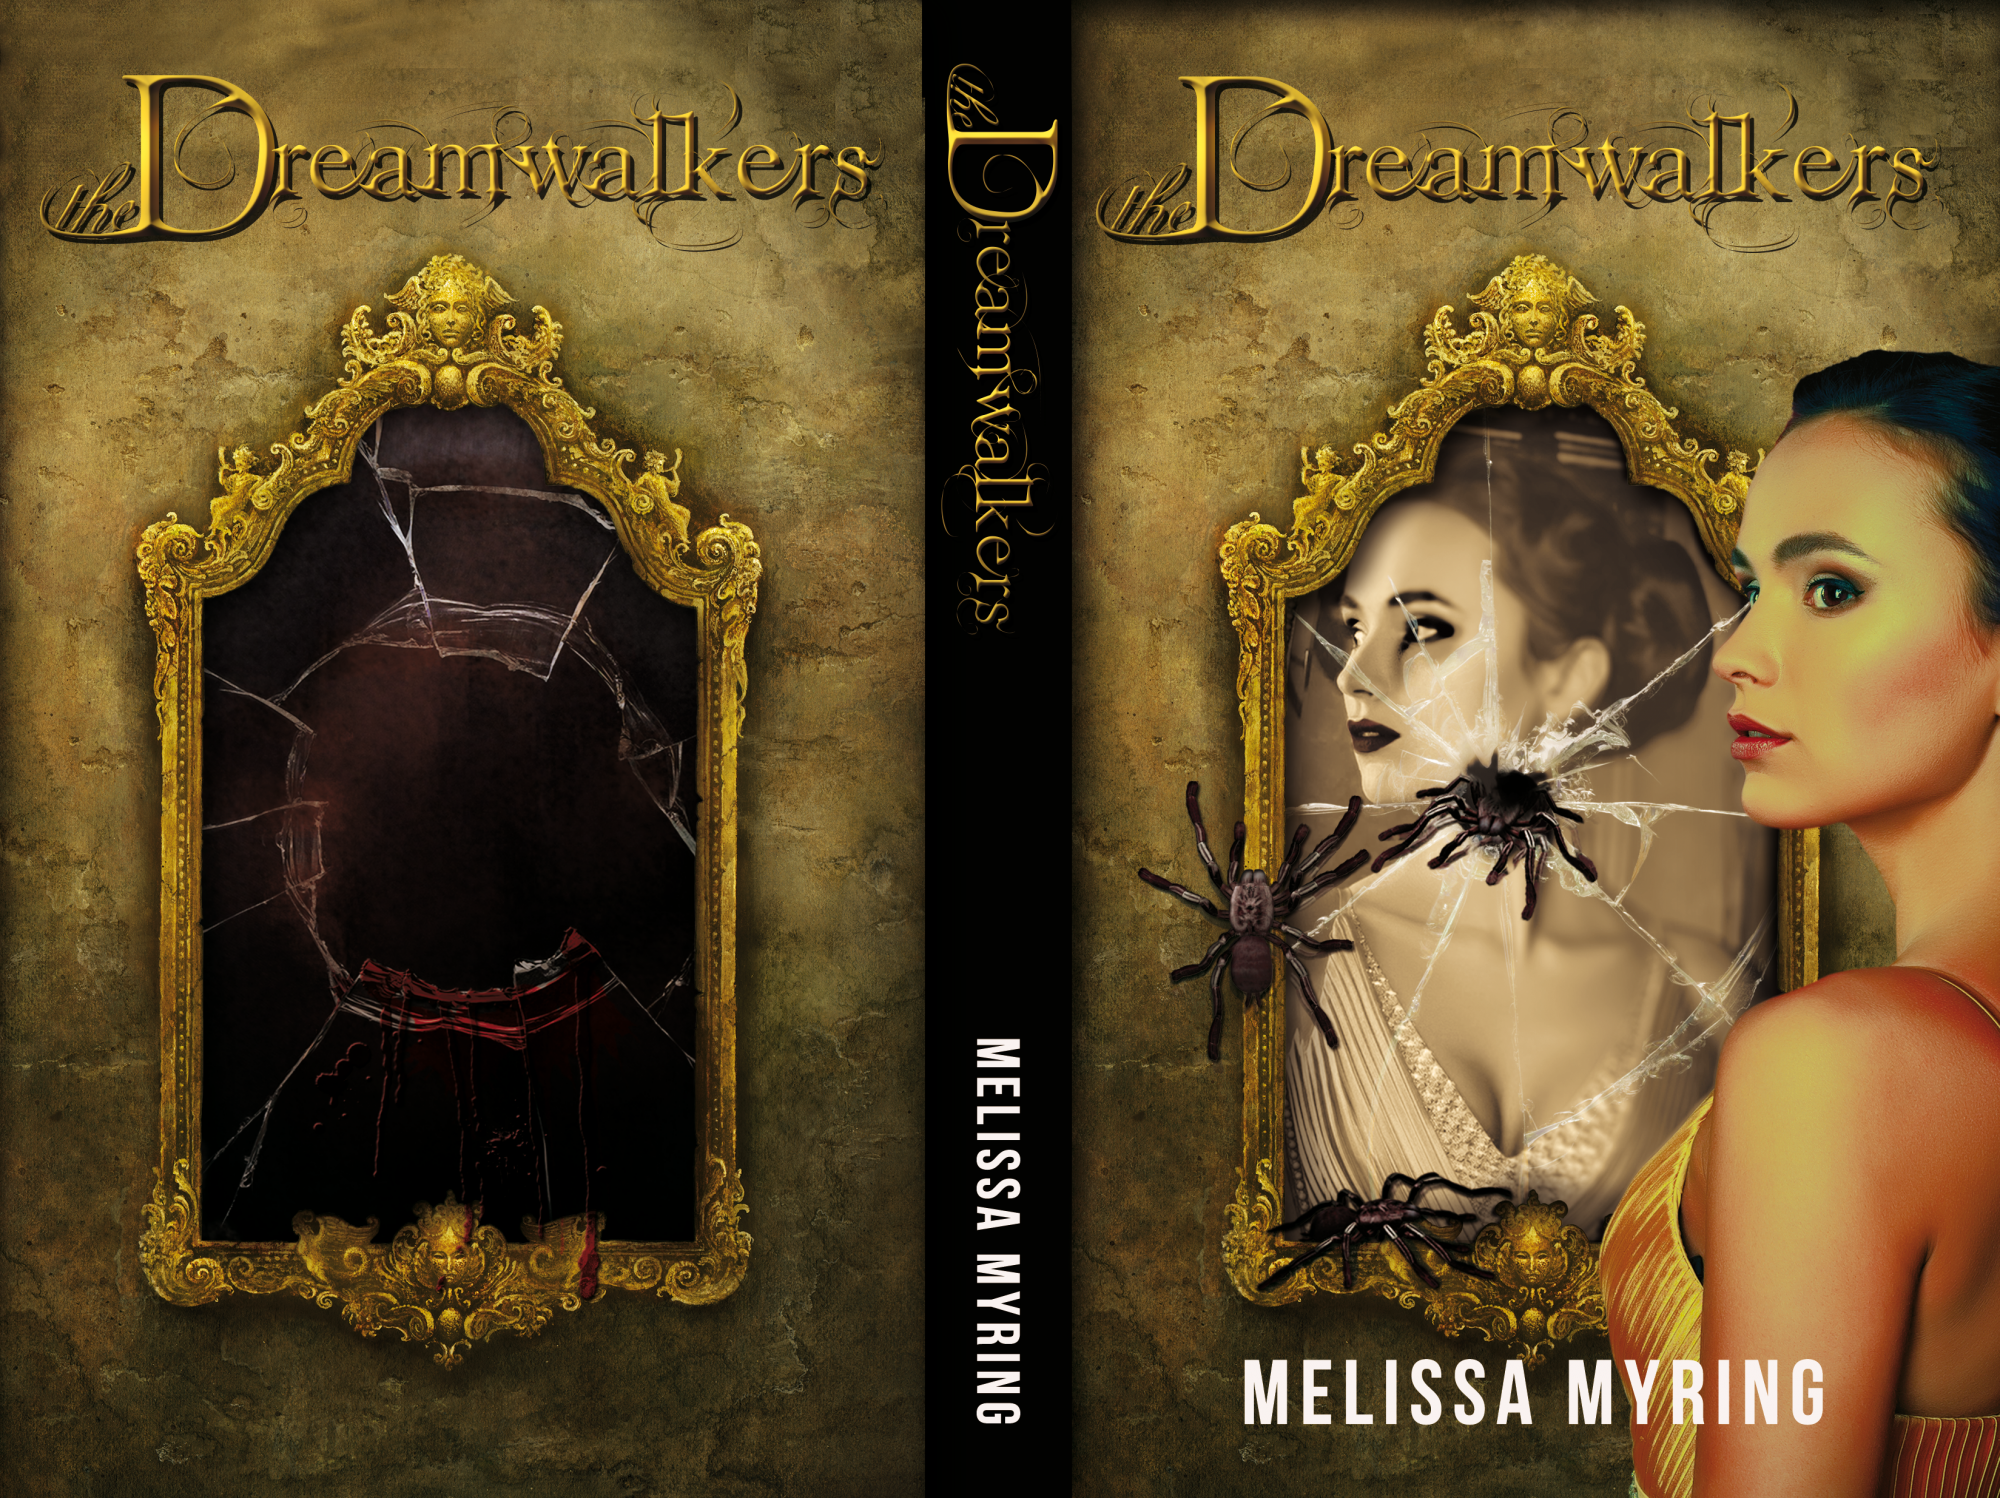 The Dreamwalkers - Giusy - No Back Text